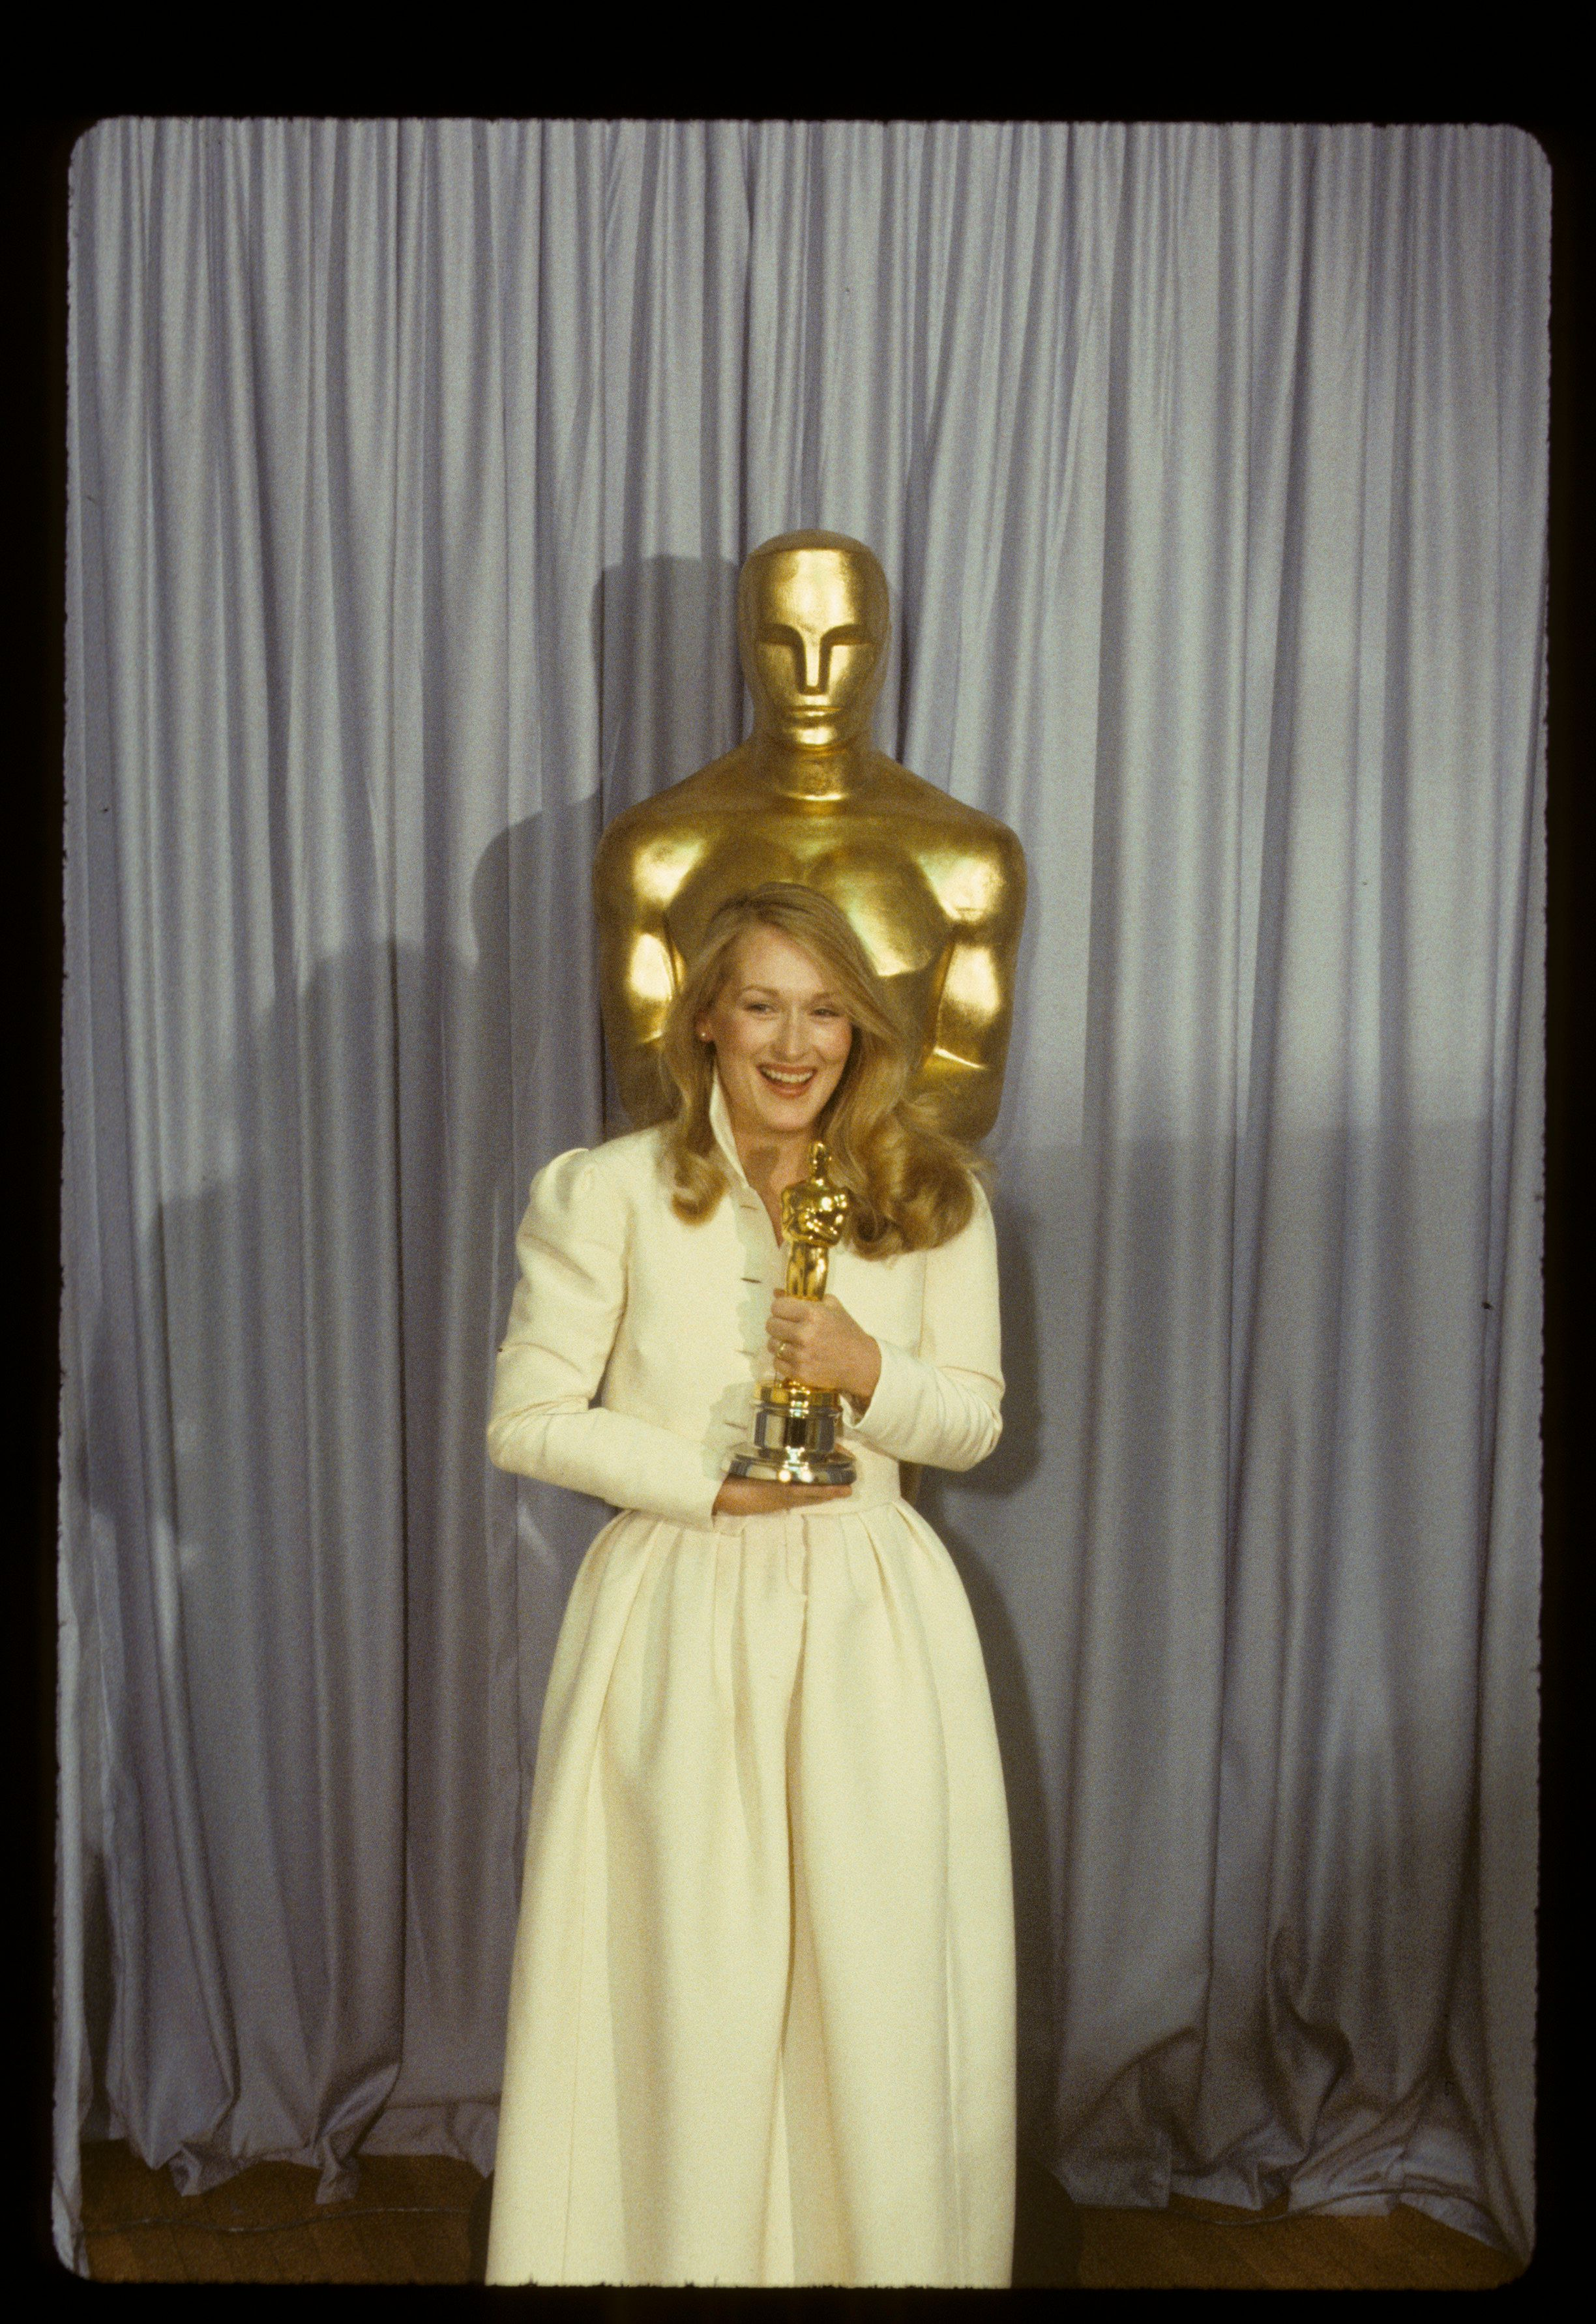 THE 52ND ANNUAL ACADEMY AWARDS - Backstage Coverage - Airdate: April 14, 1980. (Photo by ABC Photo Archives/ABC via Getty Images) MERYL STREEP WITH BEST SUPPORTING ACTRESS OSCAR